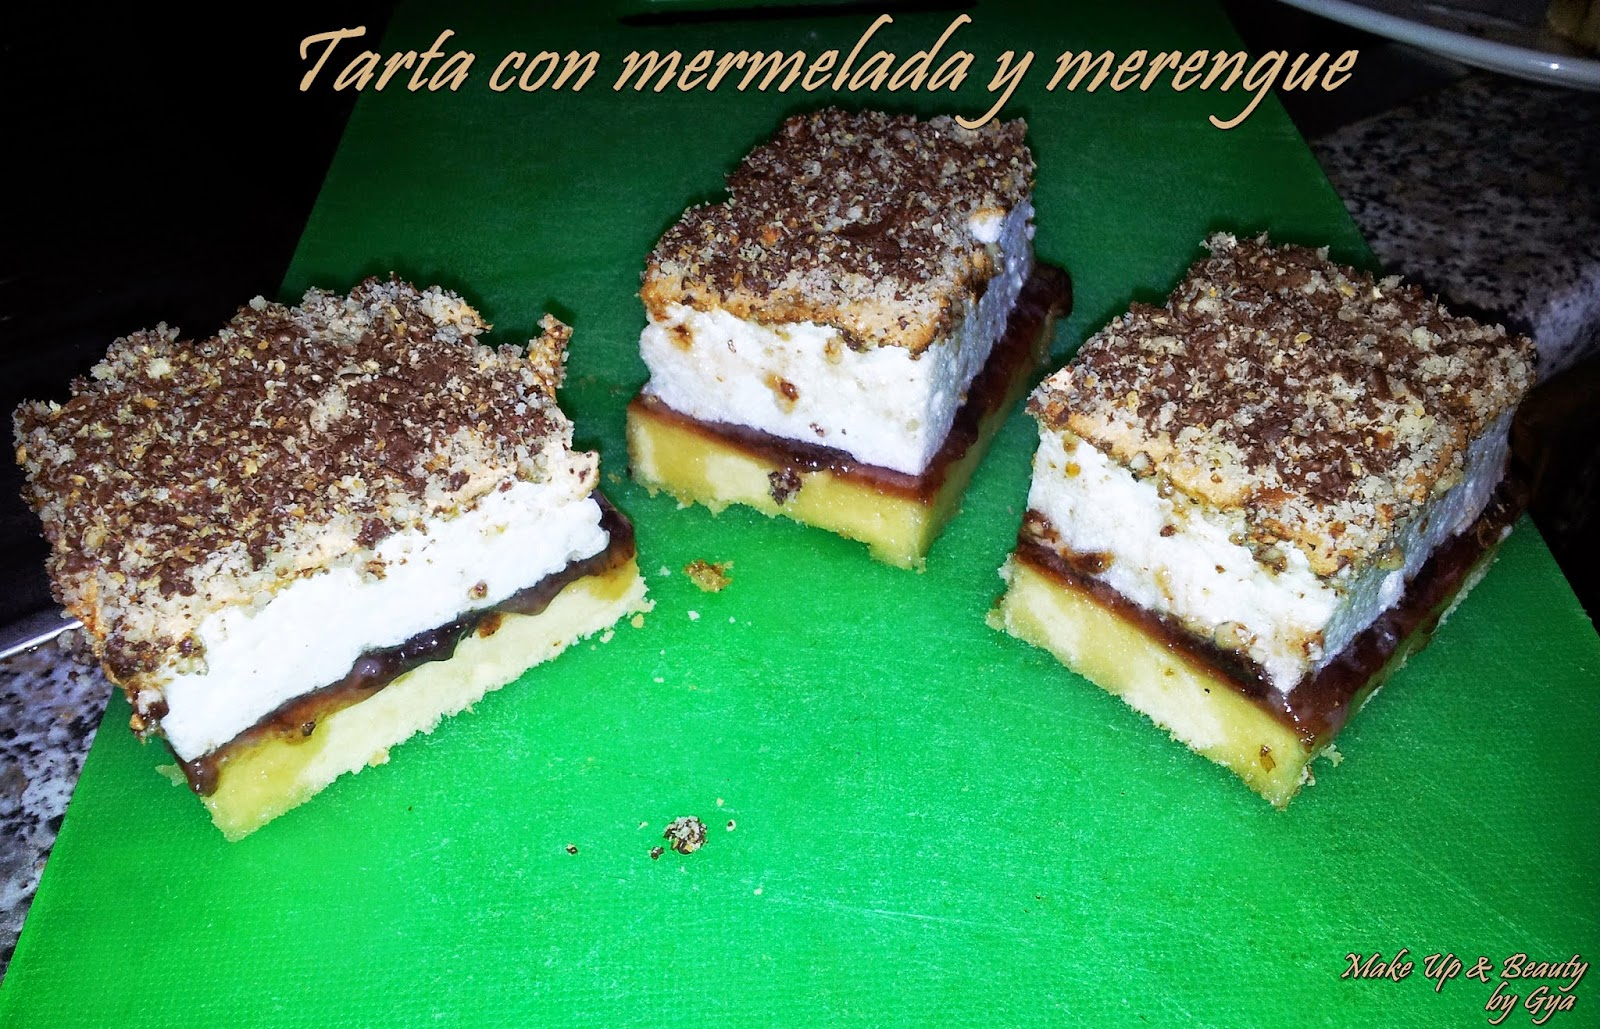 Tarta con mermelada y merengue